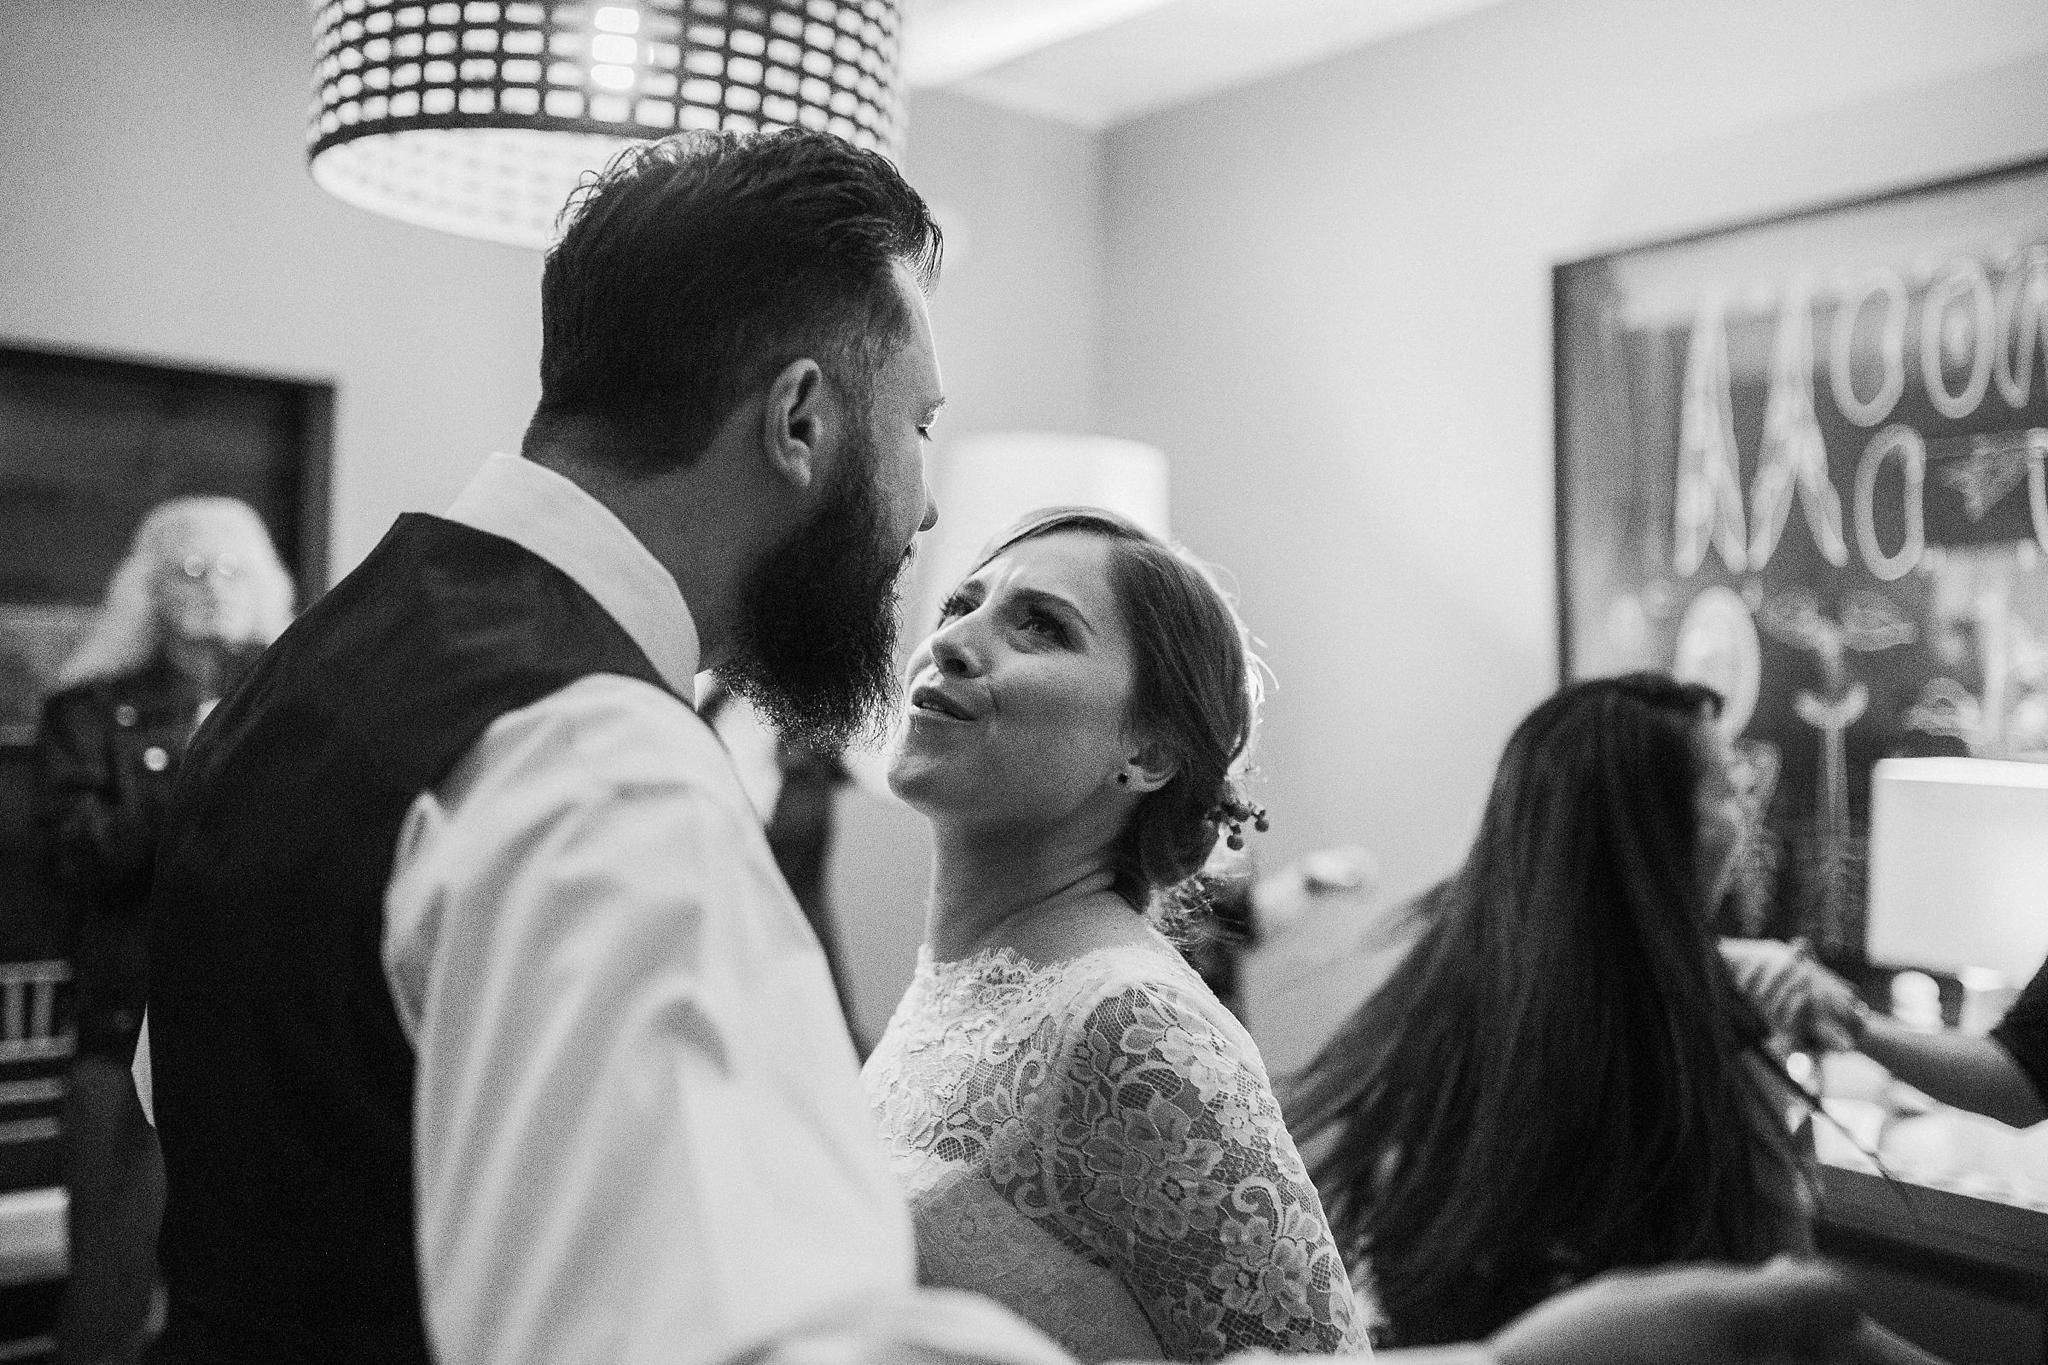 Alicia+lucia+photography+-+albuquerque+wedding+photographer+-+santa+fe+wedding+photography+-+new+mexico+wedding+photographer+-+albuquerque+wedding+-+sarabande+bed+breakfast+-+bed+and+breakfast+wedding_0120.jpg